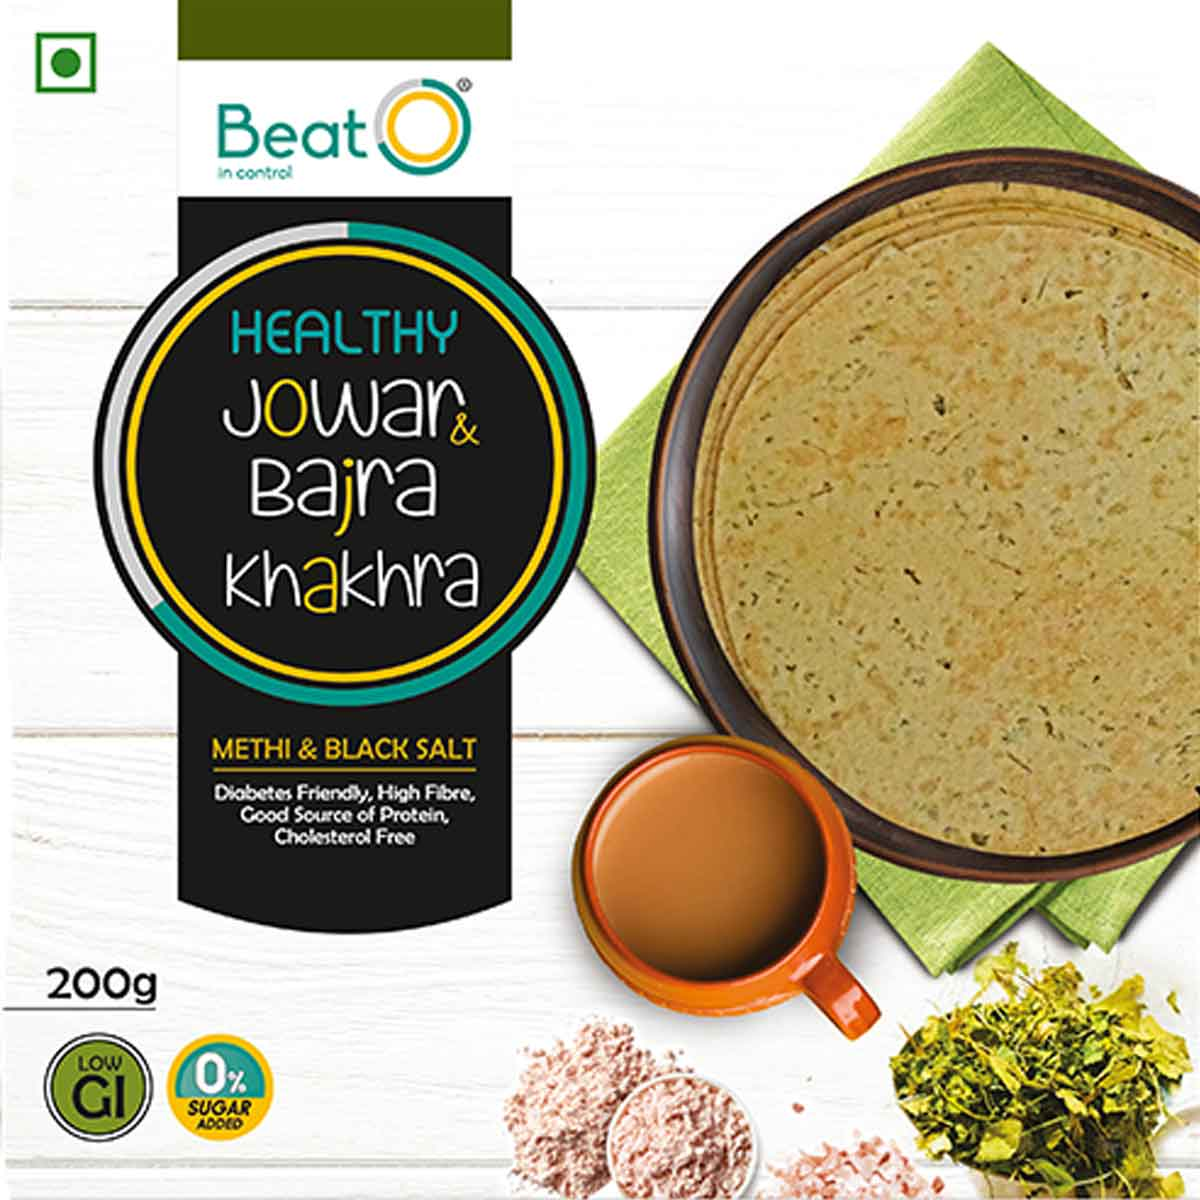 Jowar and Bajra Khakhra - Methi and Black Salt